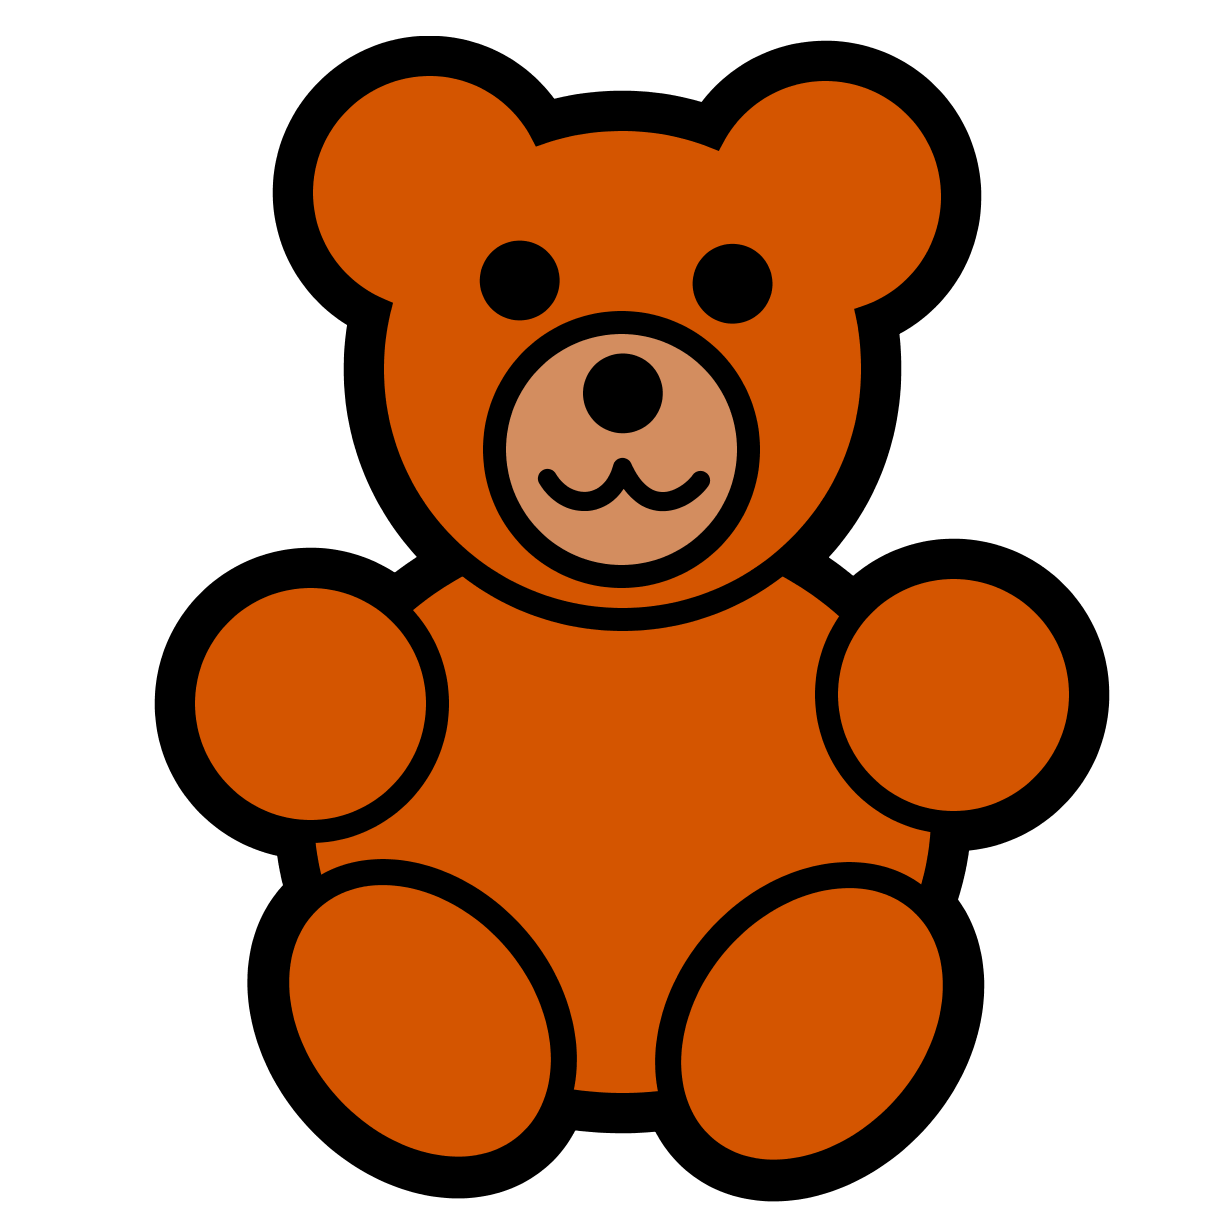 Teddy bear clipart free clipart images 5